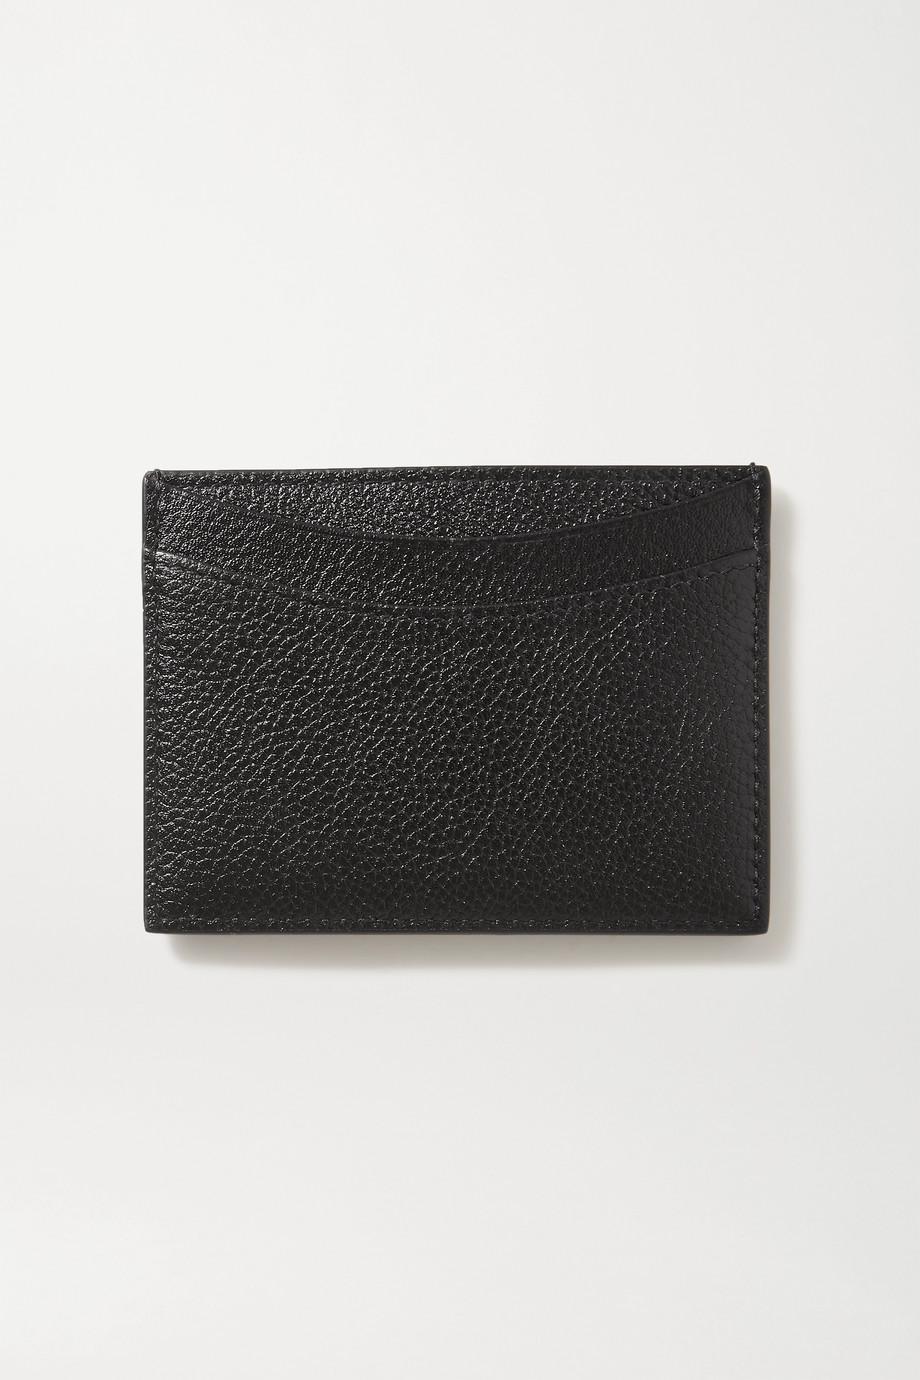 Balenciaga Hourglass textured-leather cardholder